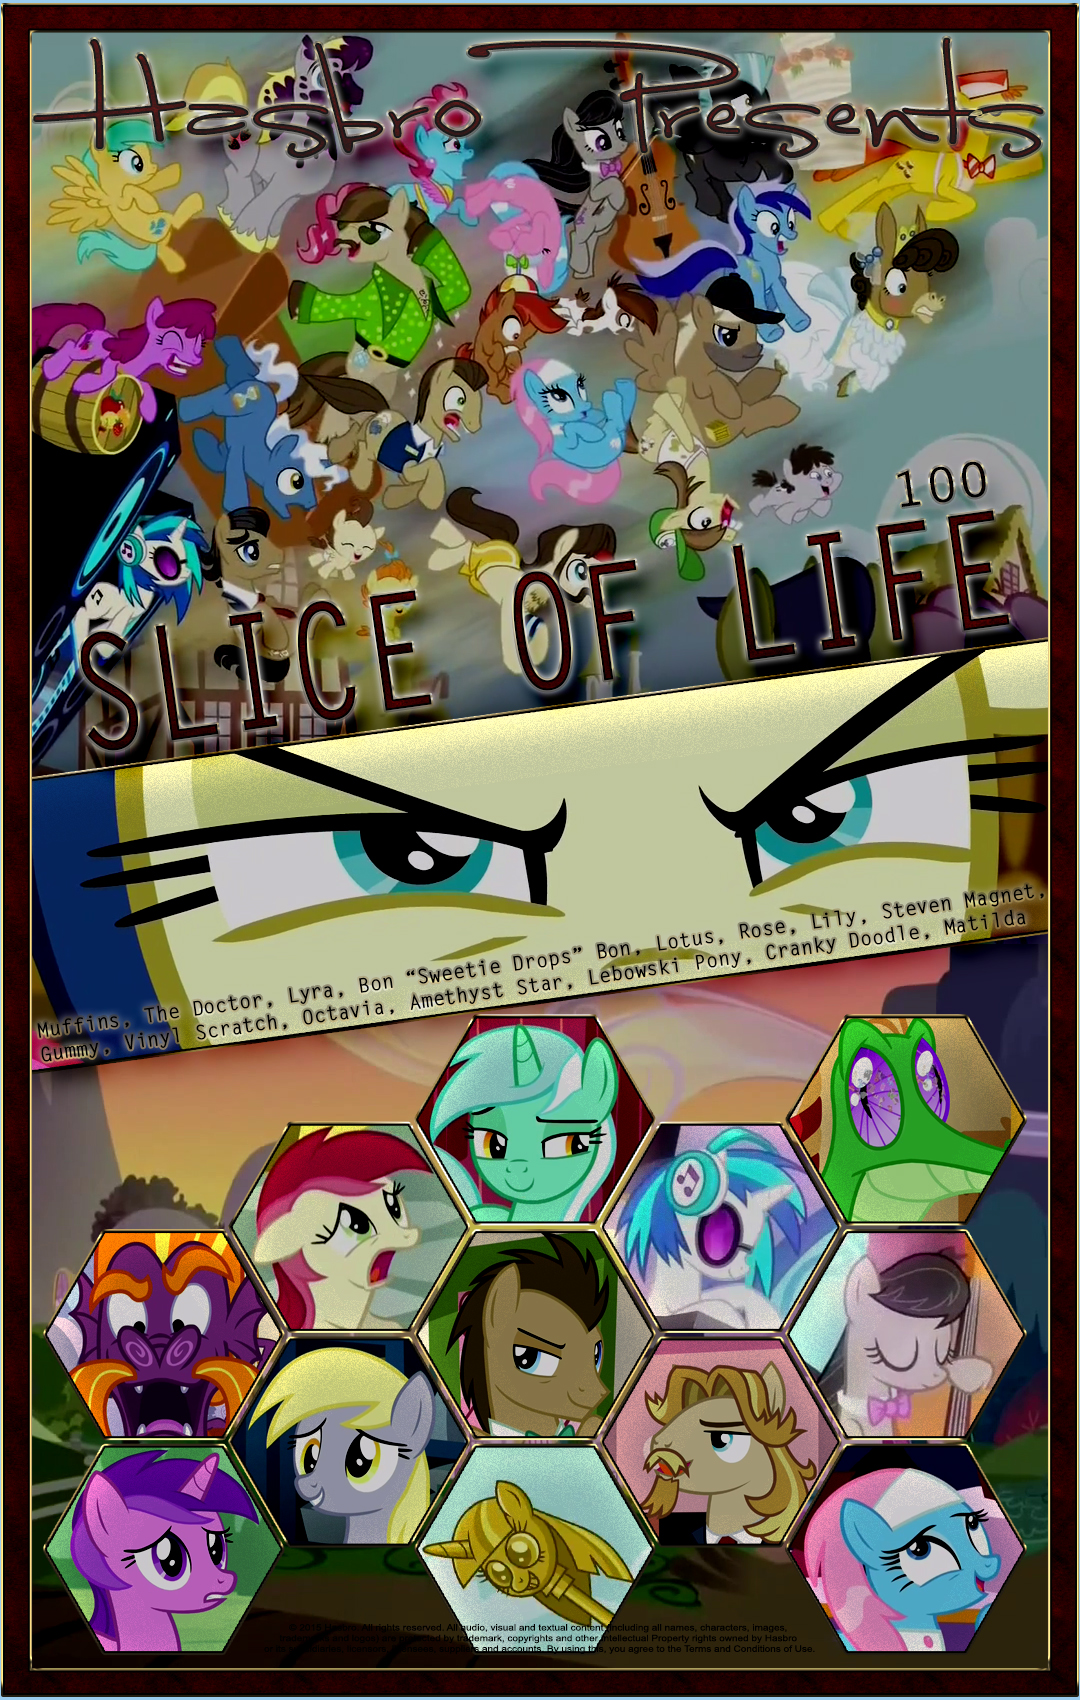 mlp___slice_of_life___movie_poster_by_pims1978-d8x8st1.jpg